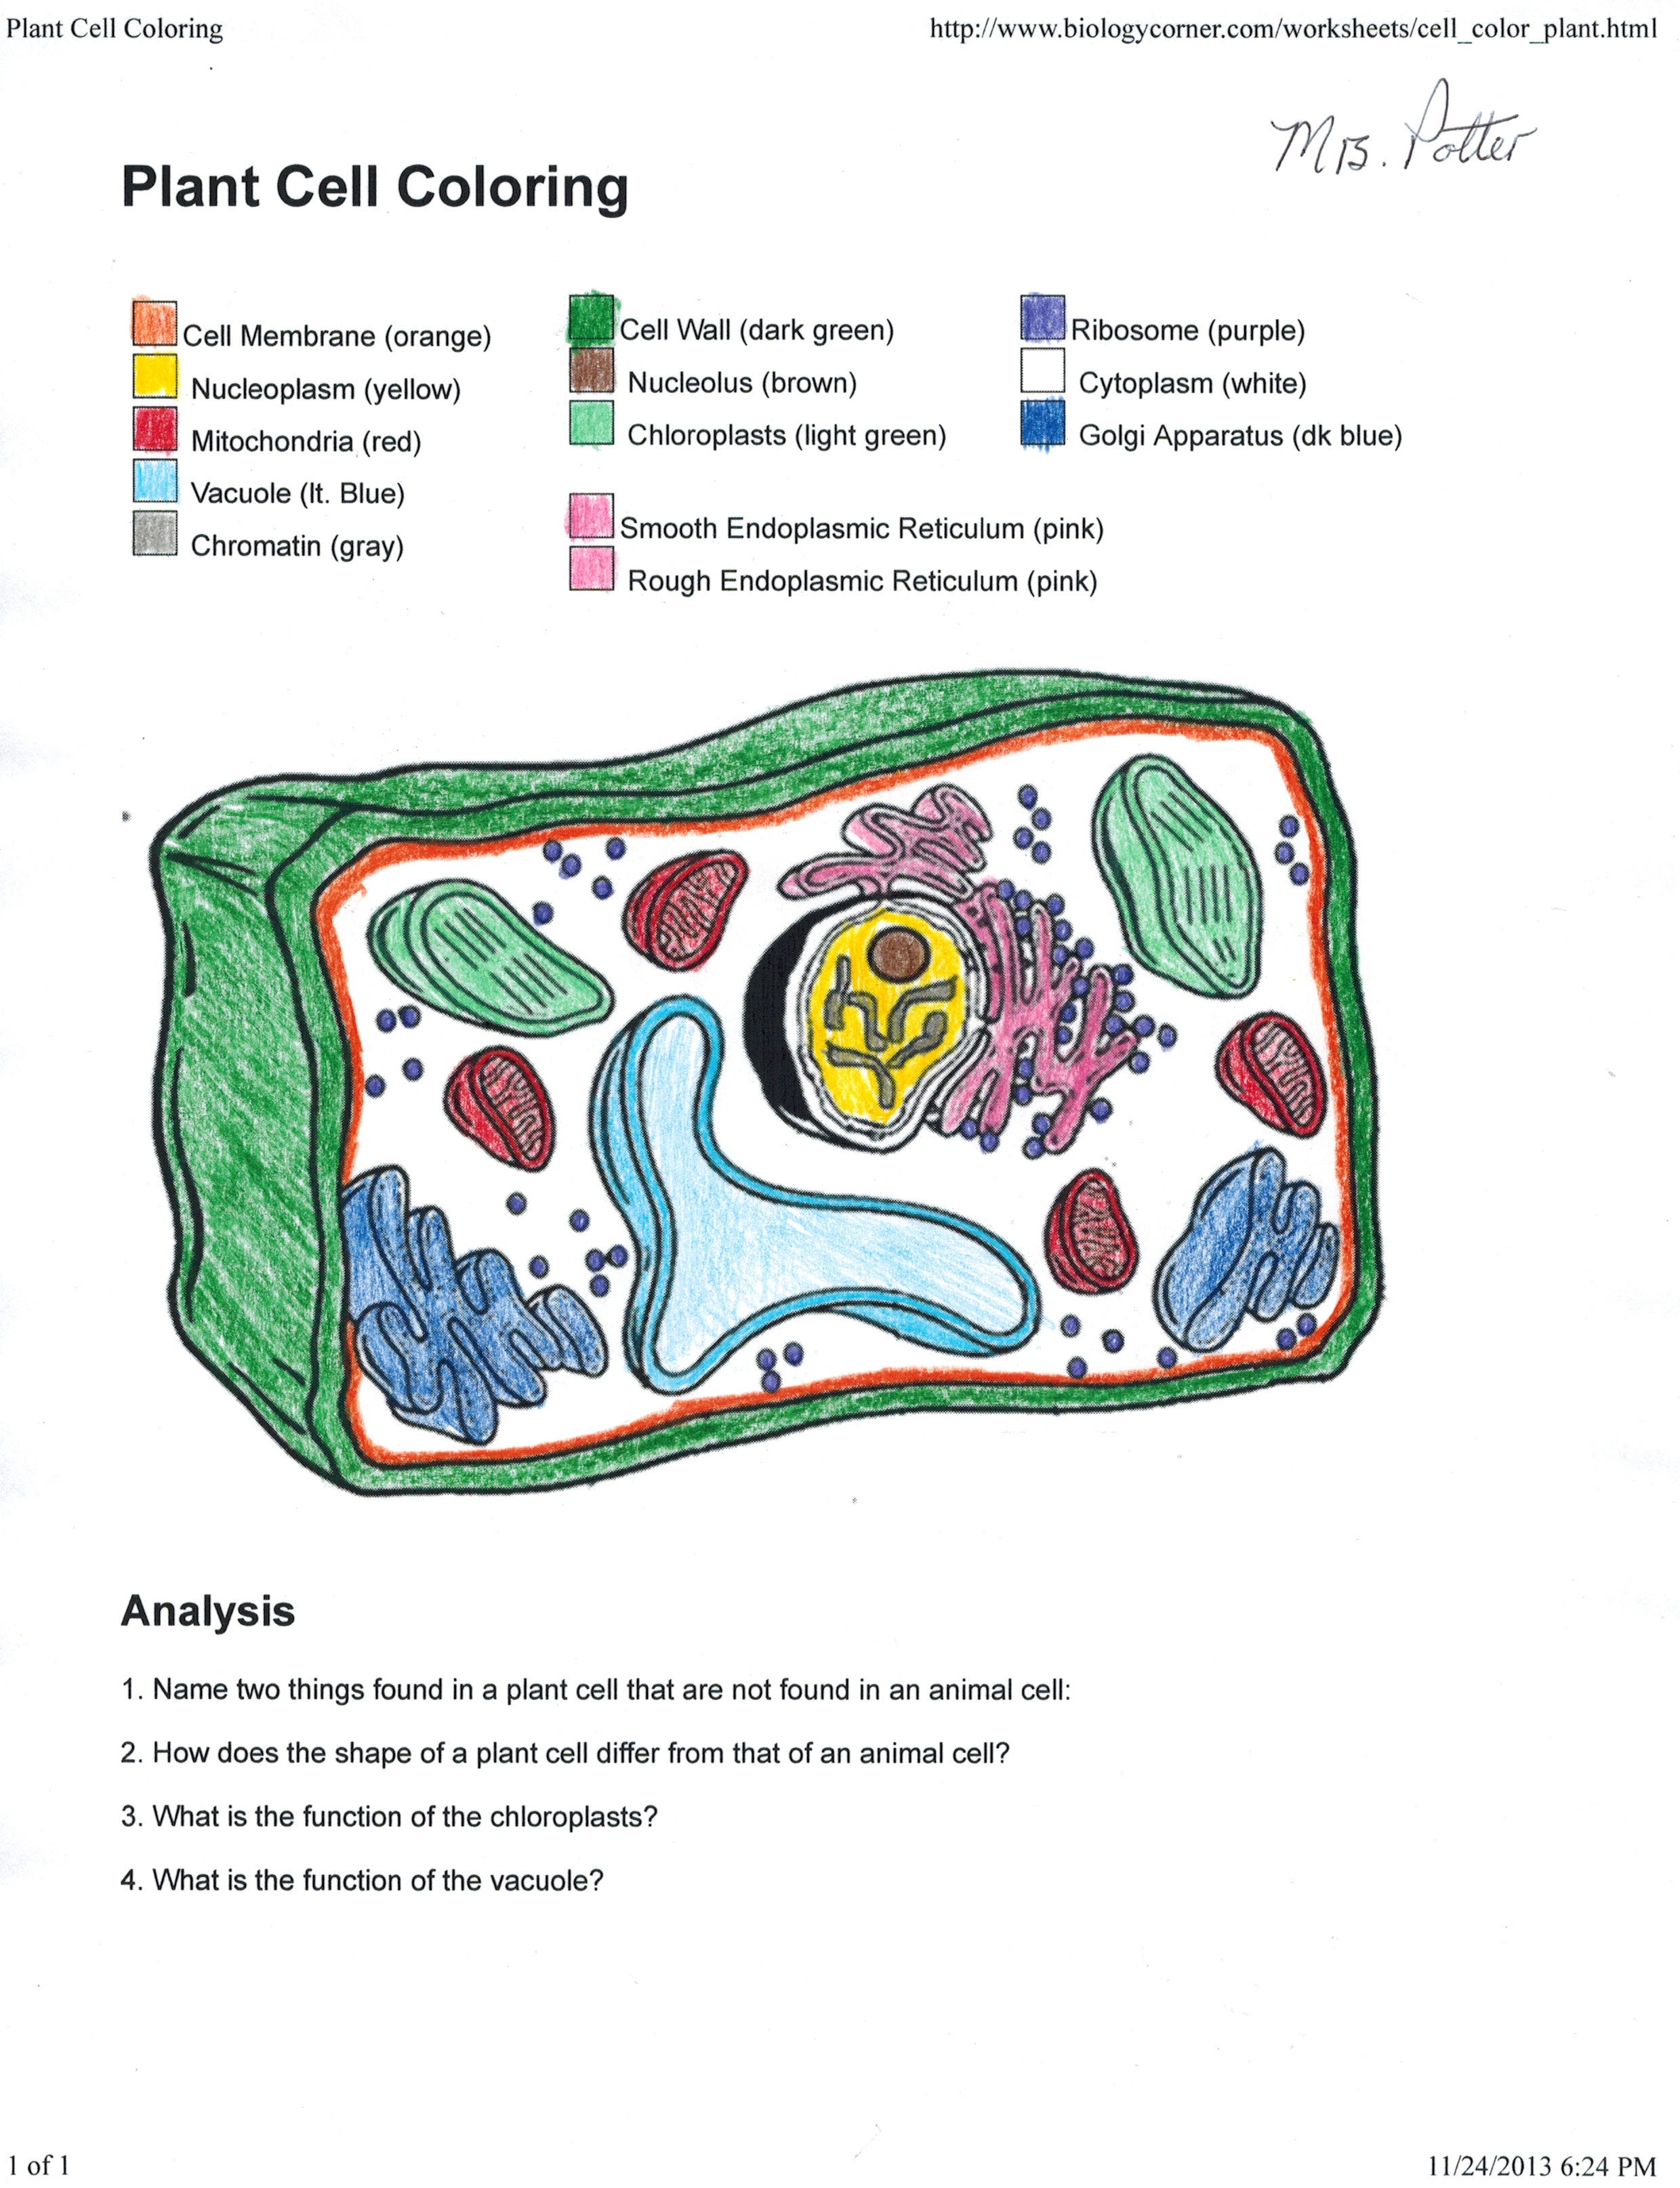 plant cell coloring page - apologia biology